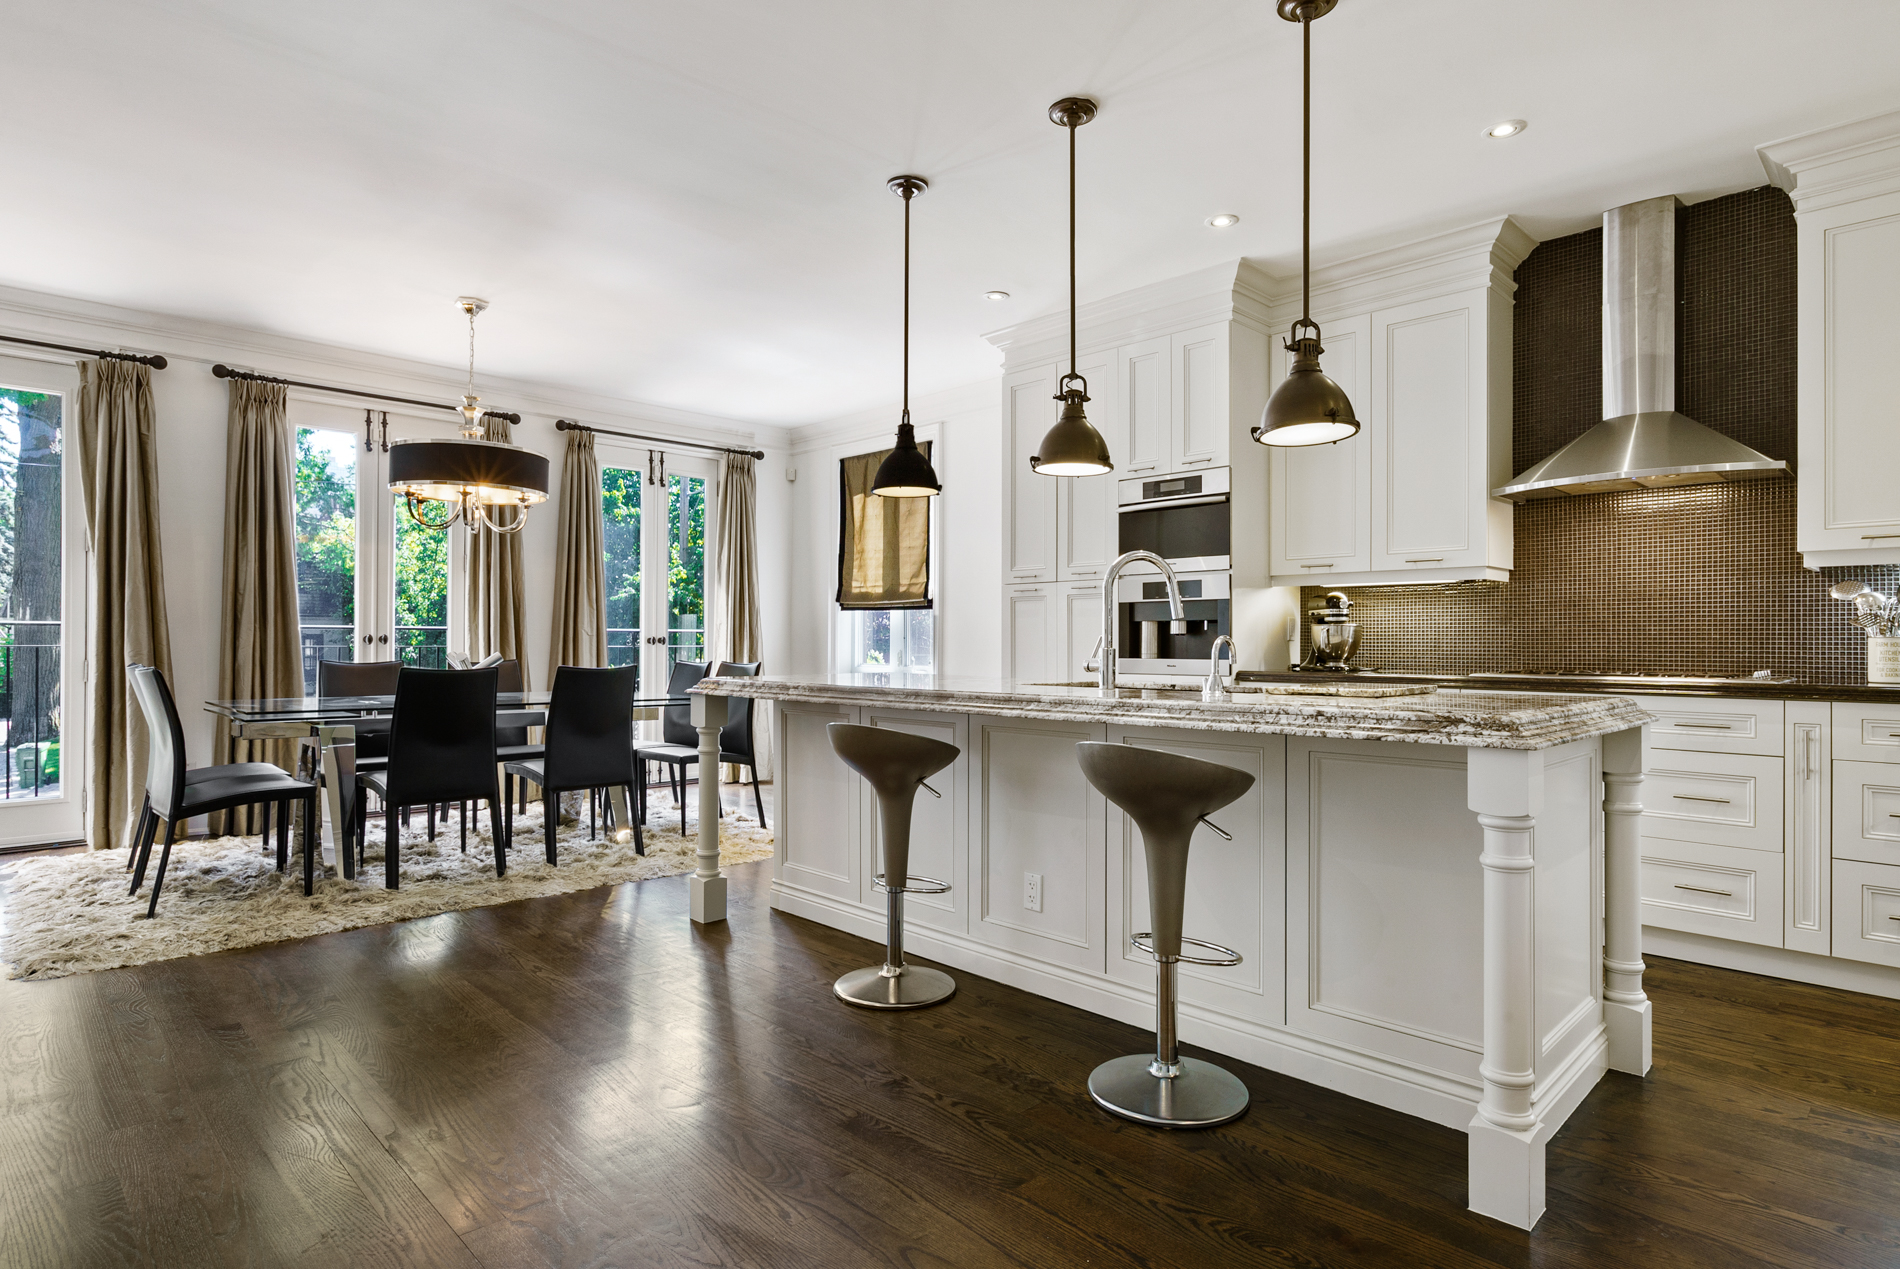 SilverHouse-Real-Estate-Photography-2-4.